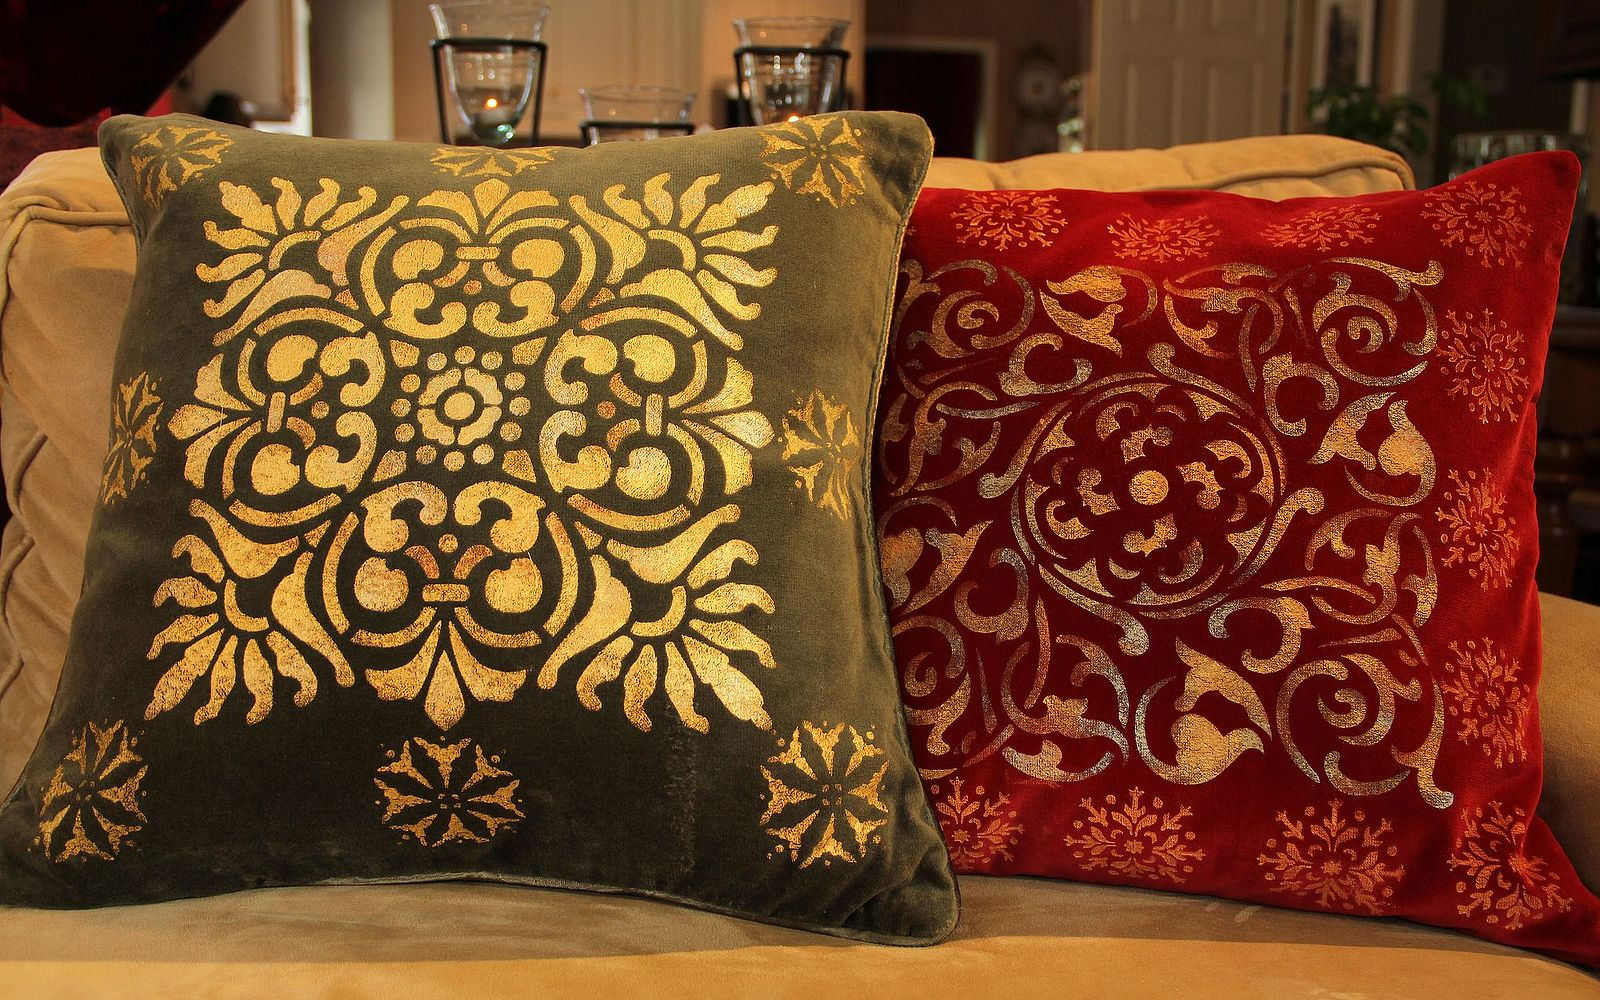 s 14 glamorous ways to upgrade your home using stencils, Stencil your pillows for the Holidays